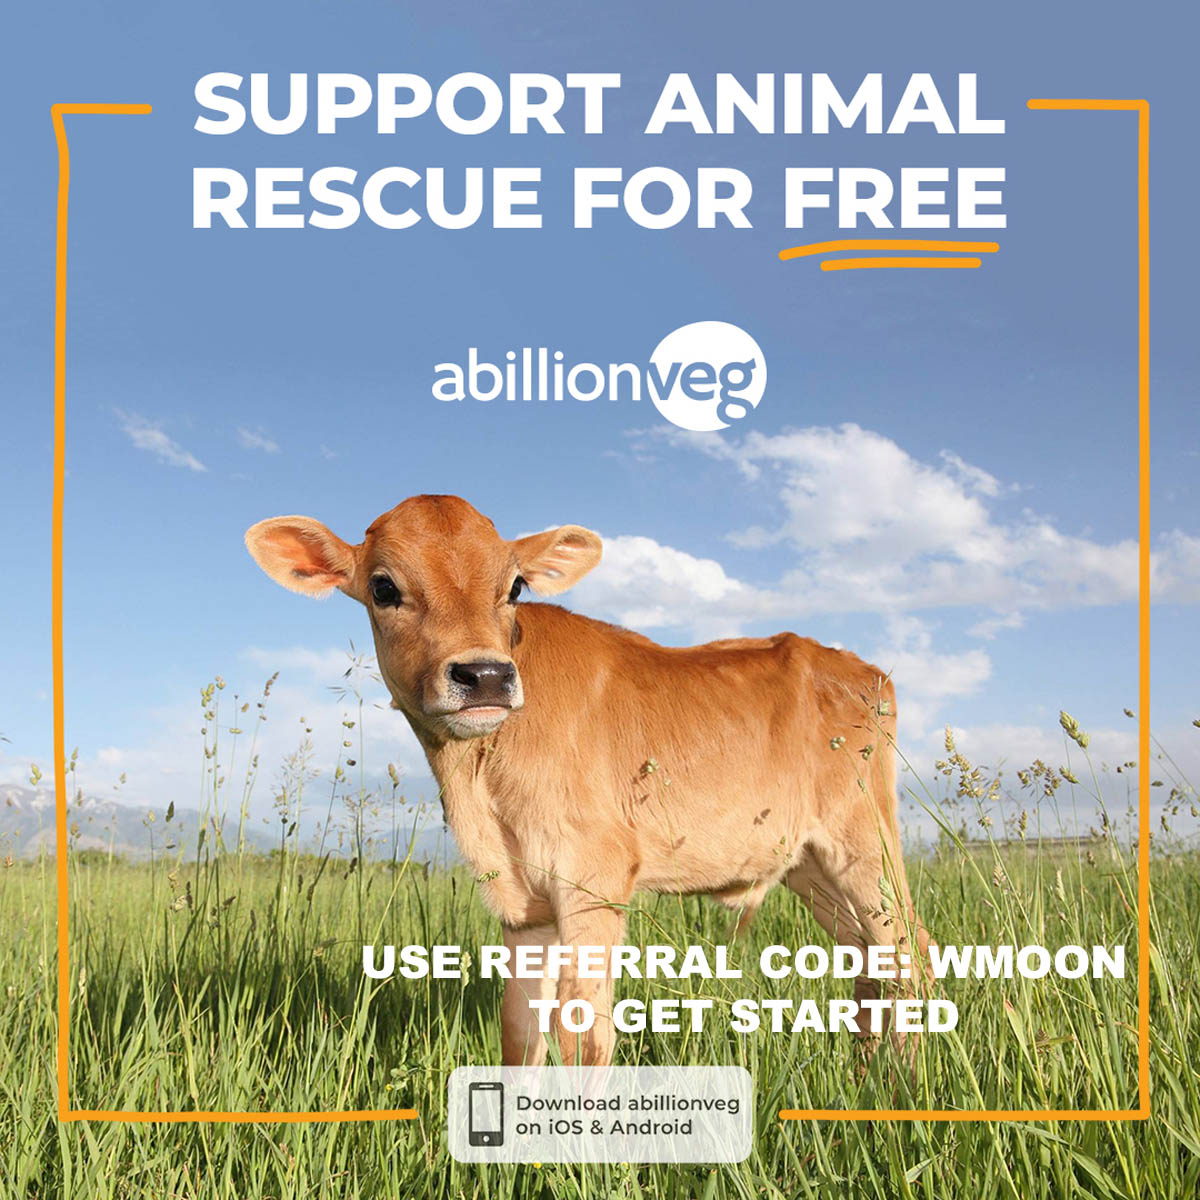 "A photo of a cow with the text ""Support Animal Rescue For Free, abillionveg app, and referral code WMOON to get started""."